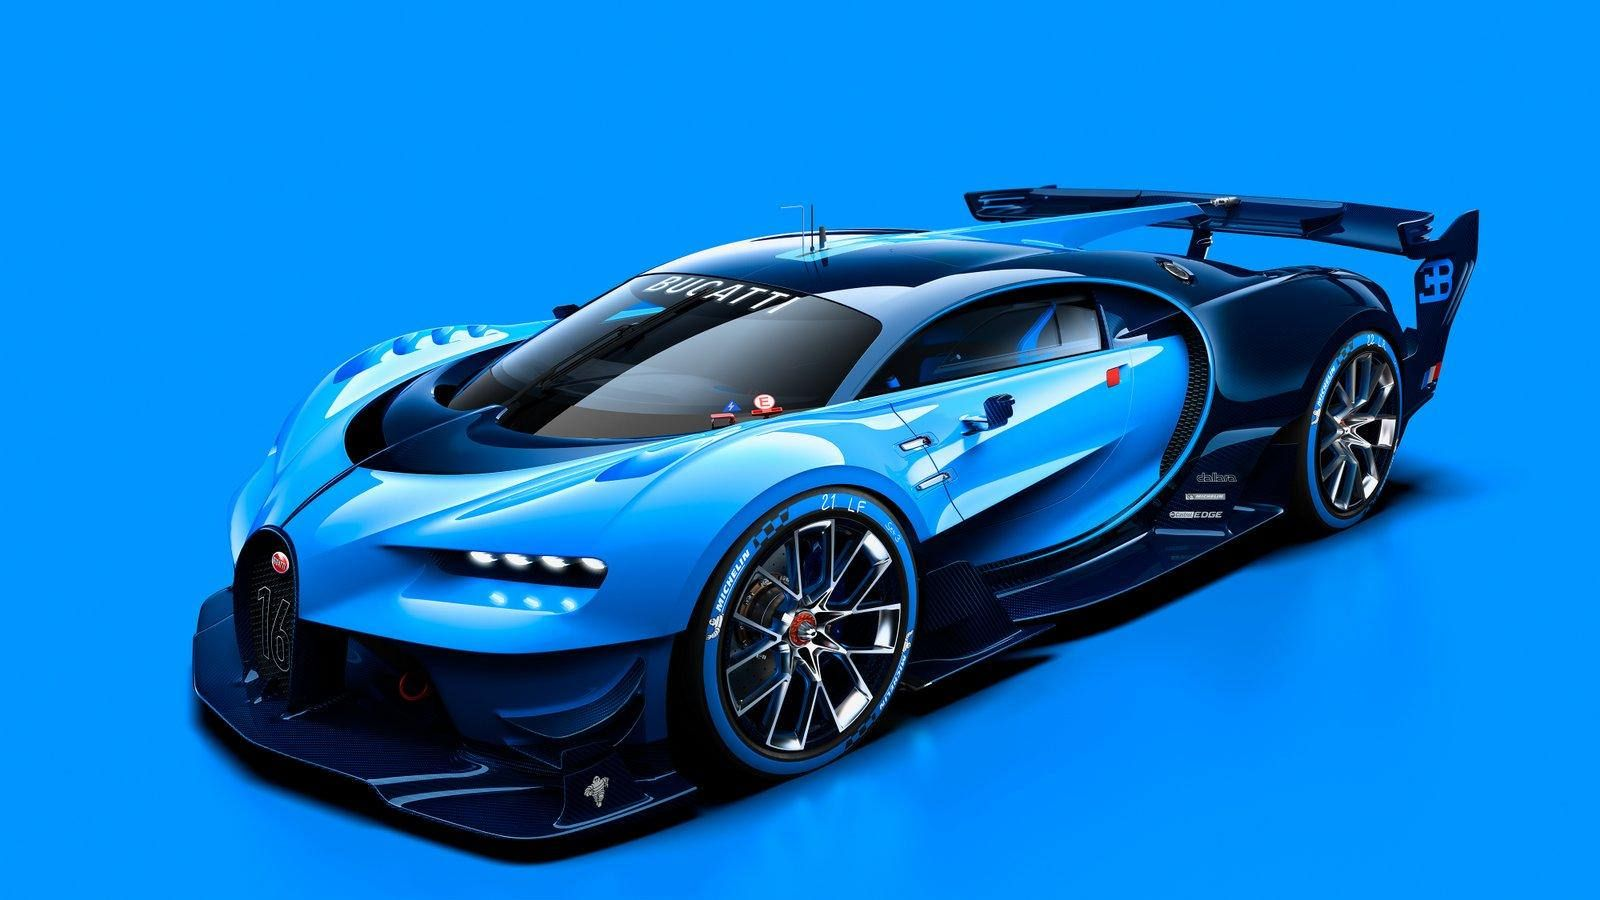 Superieur Image For Free 2015 Bugatti Vision Gran Turismo Car HD Wallpaper